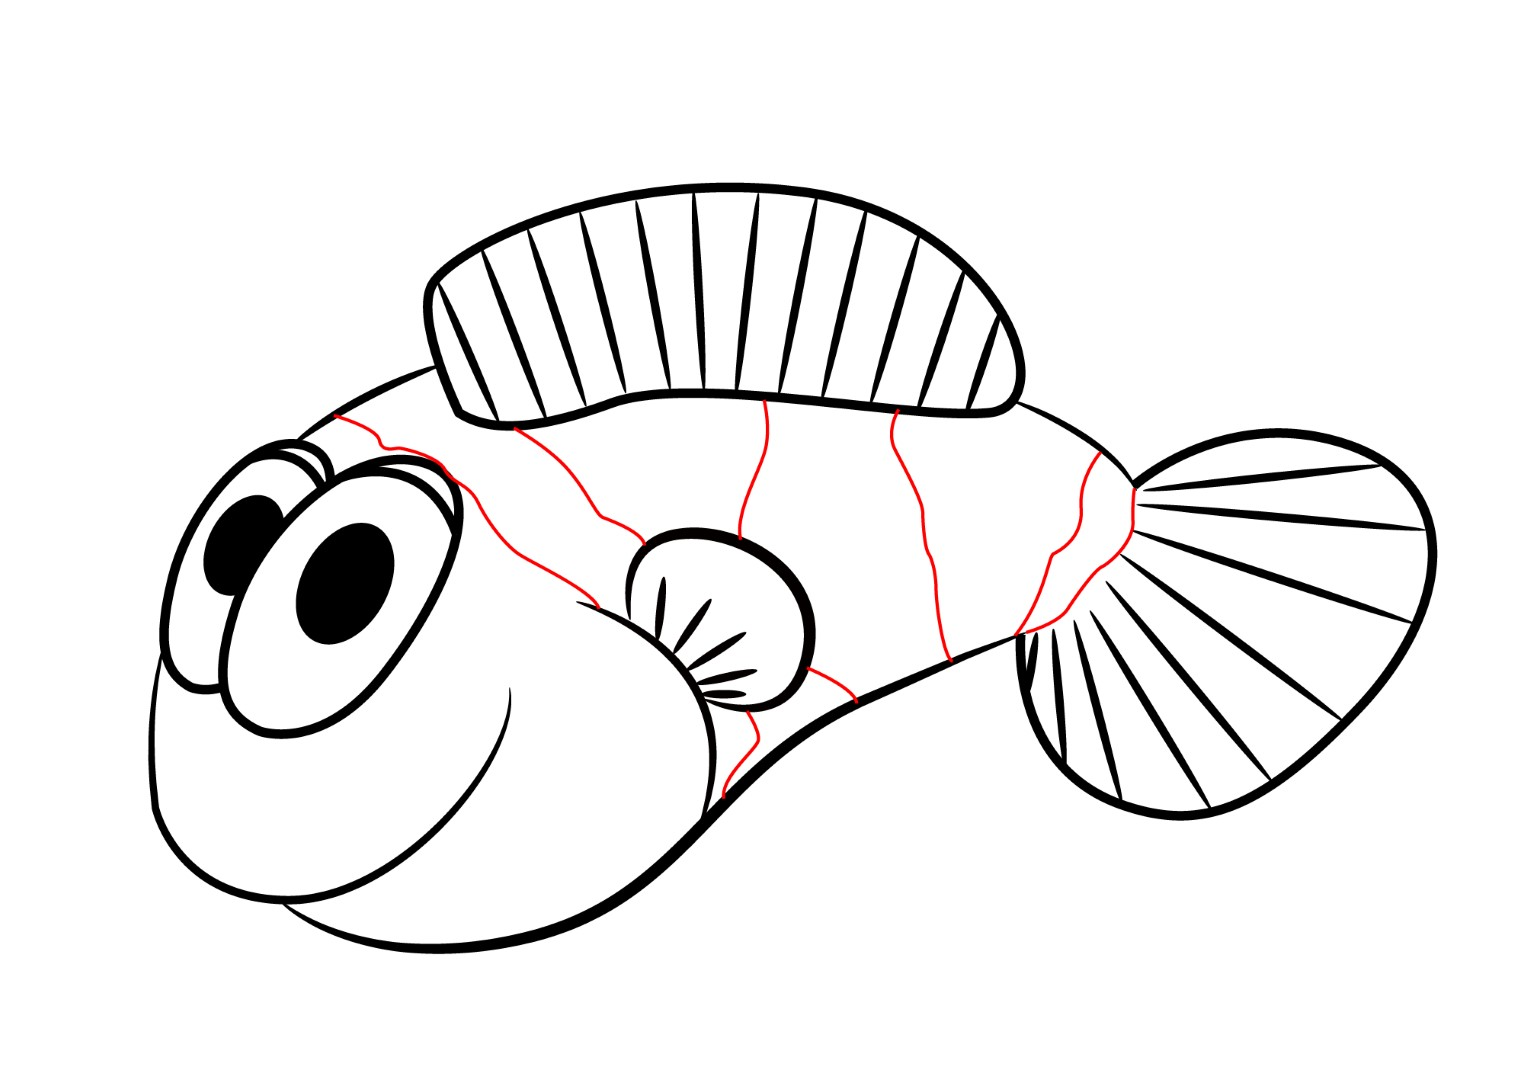 It is a picture of Invaluable Fish Cartoon Drawing